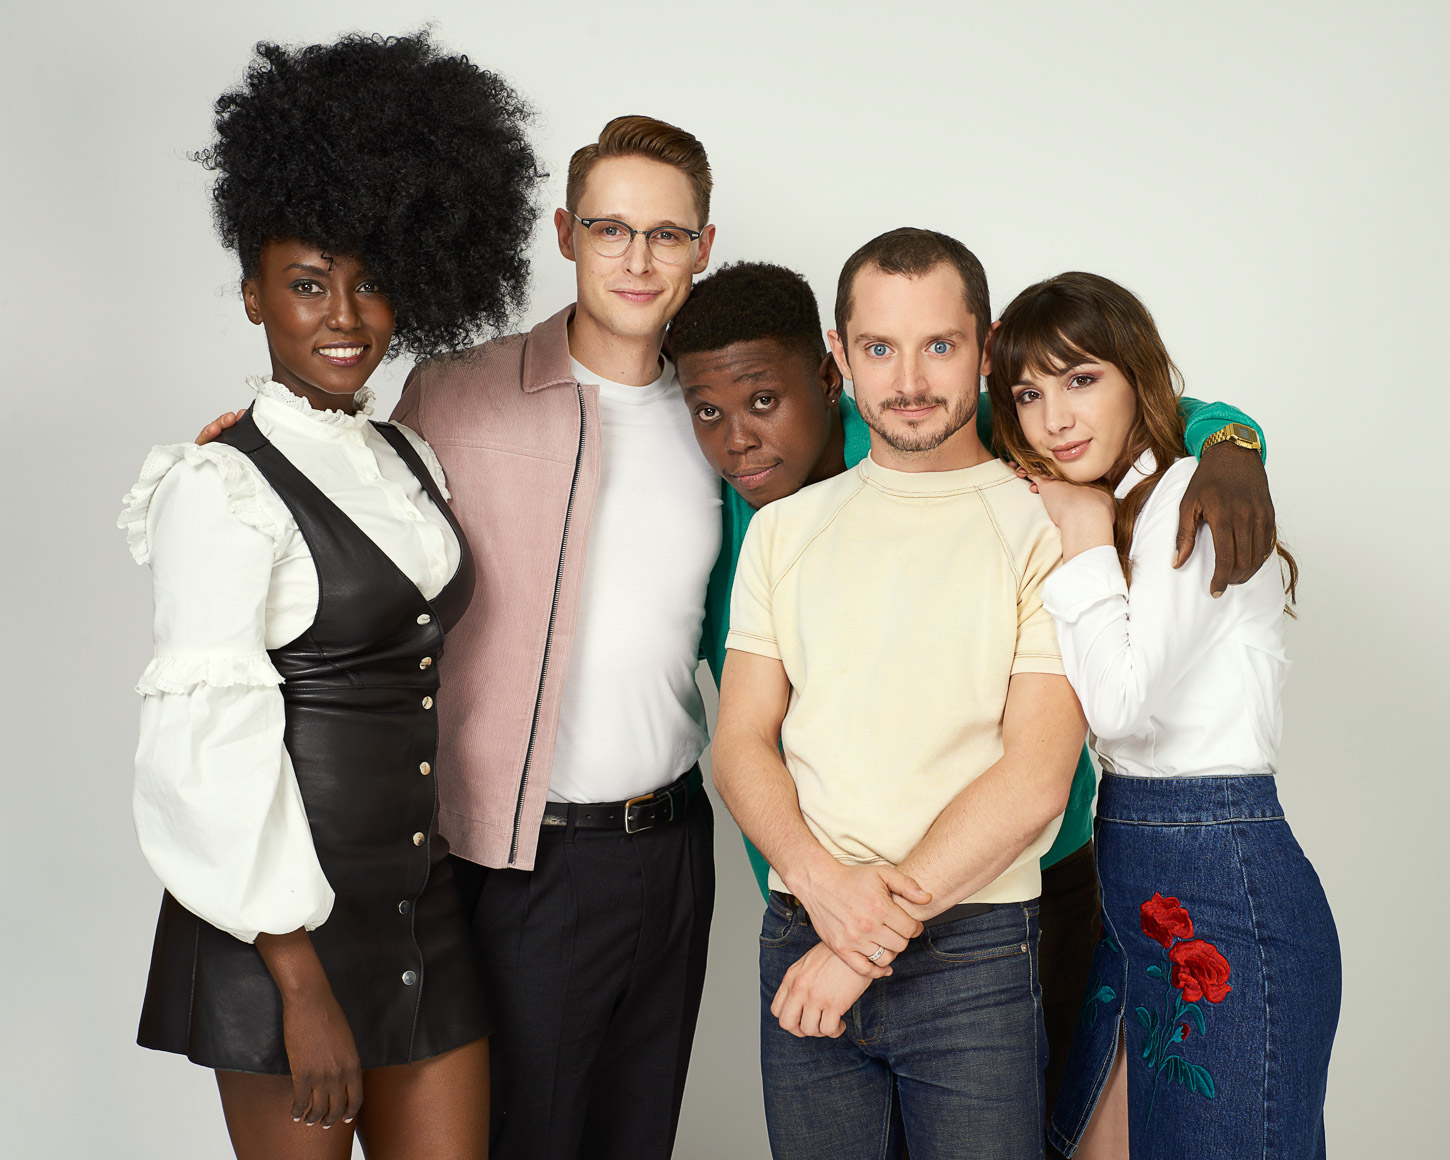 The Cast of Dirk Gently's Holistic Detective Agency.